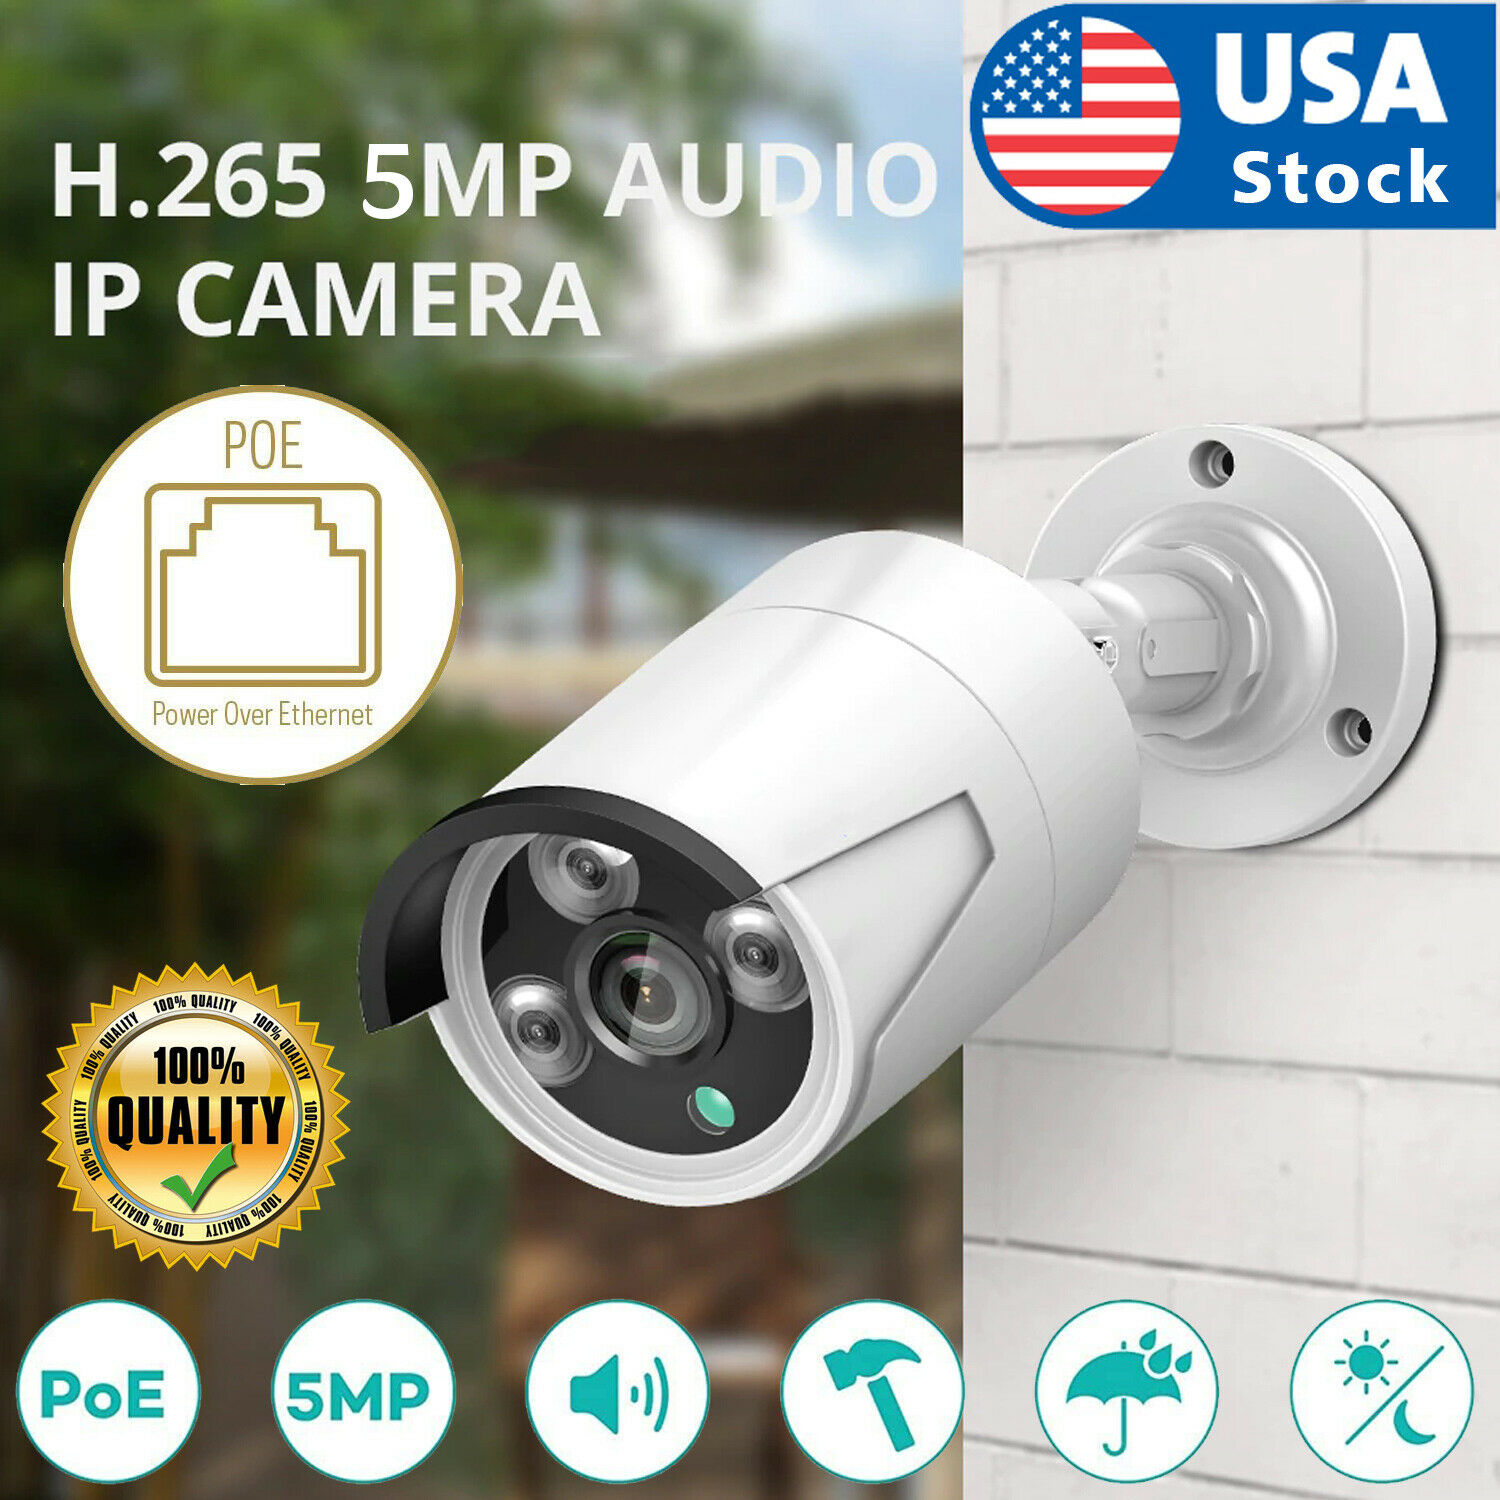 5MP PoE Audio Security IP Security Camera Outdoor Waterproof Motion Detect CCTV Consumer Electronics